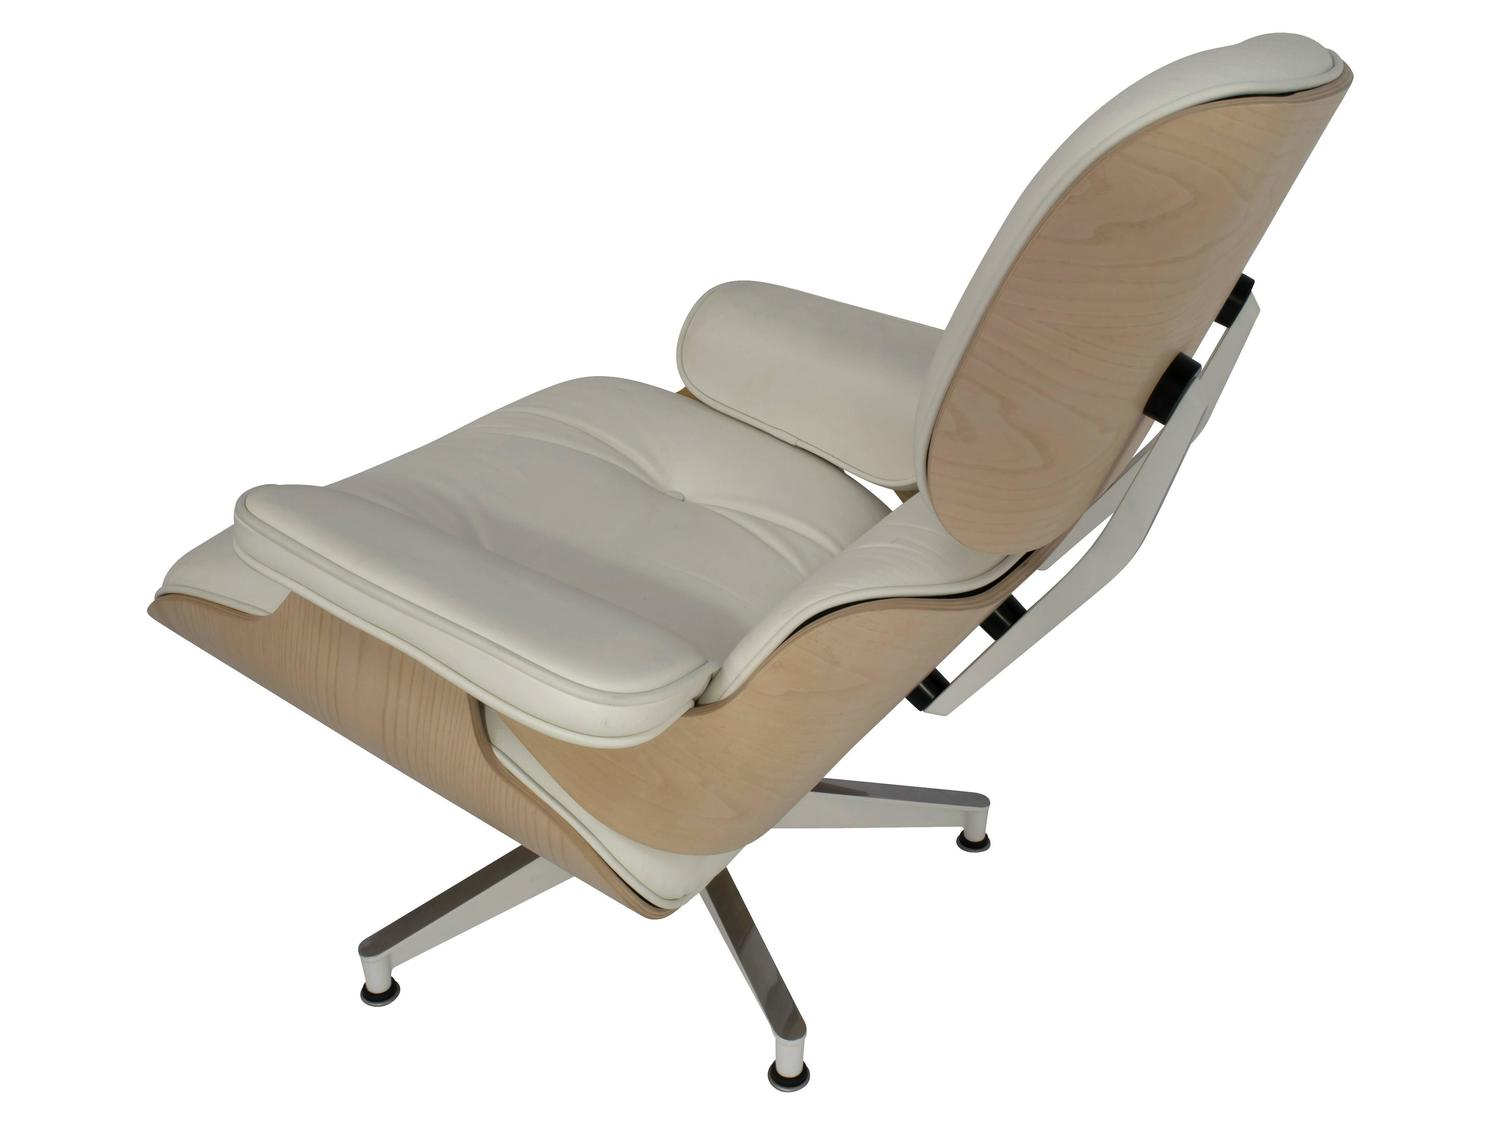 Eames Lounge Chair And Ottoman 670 671 In White Ash And